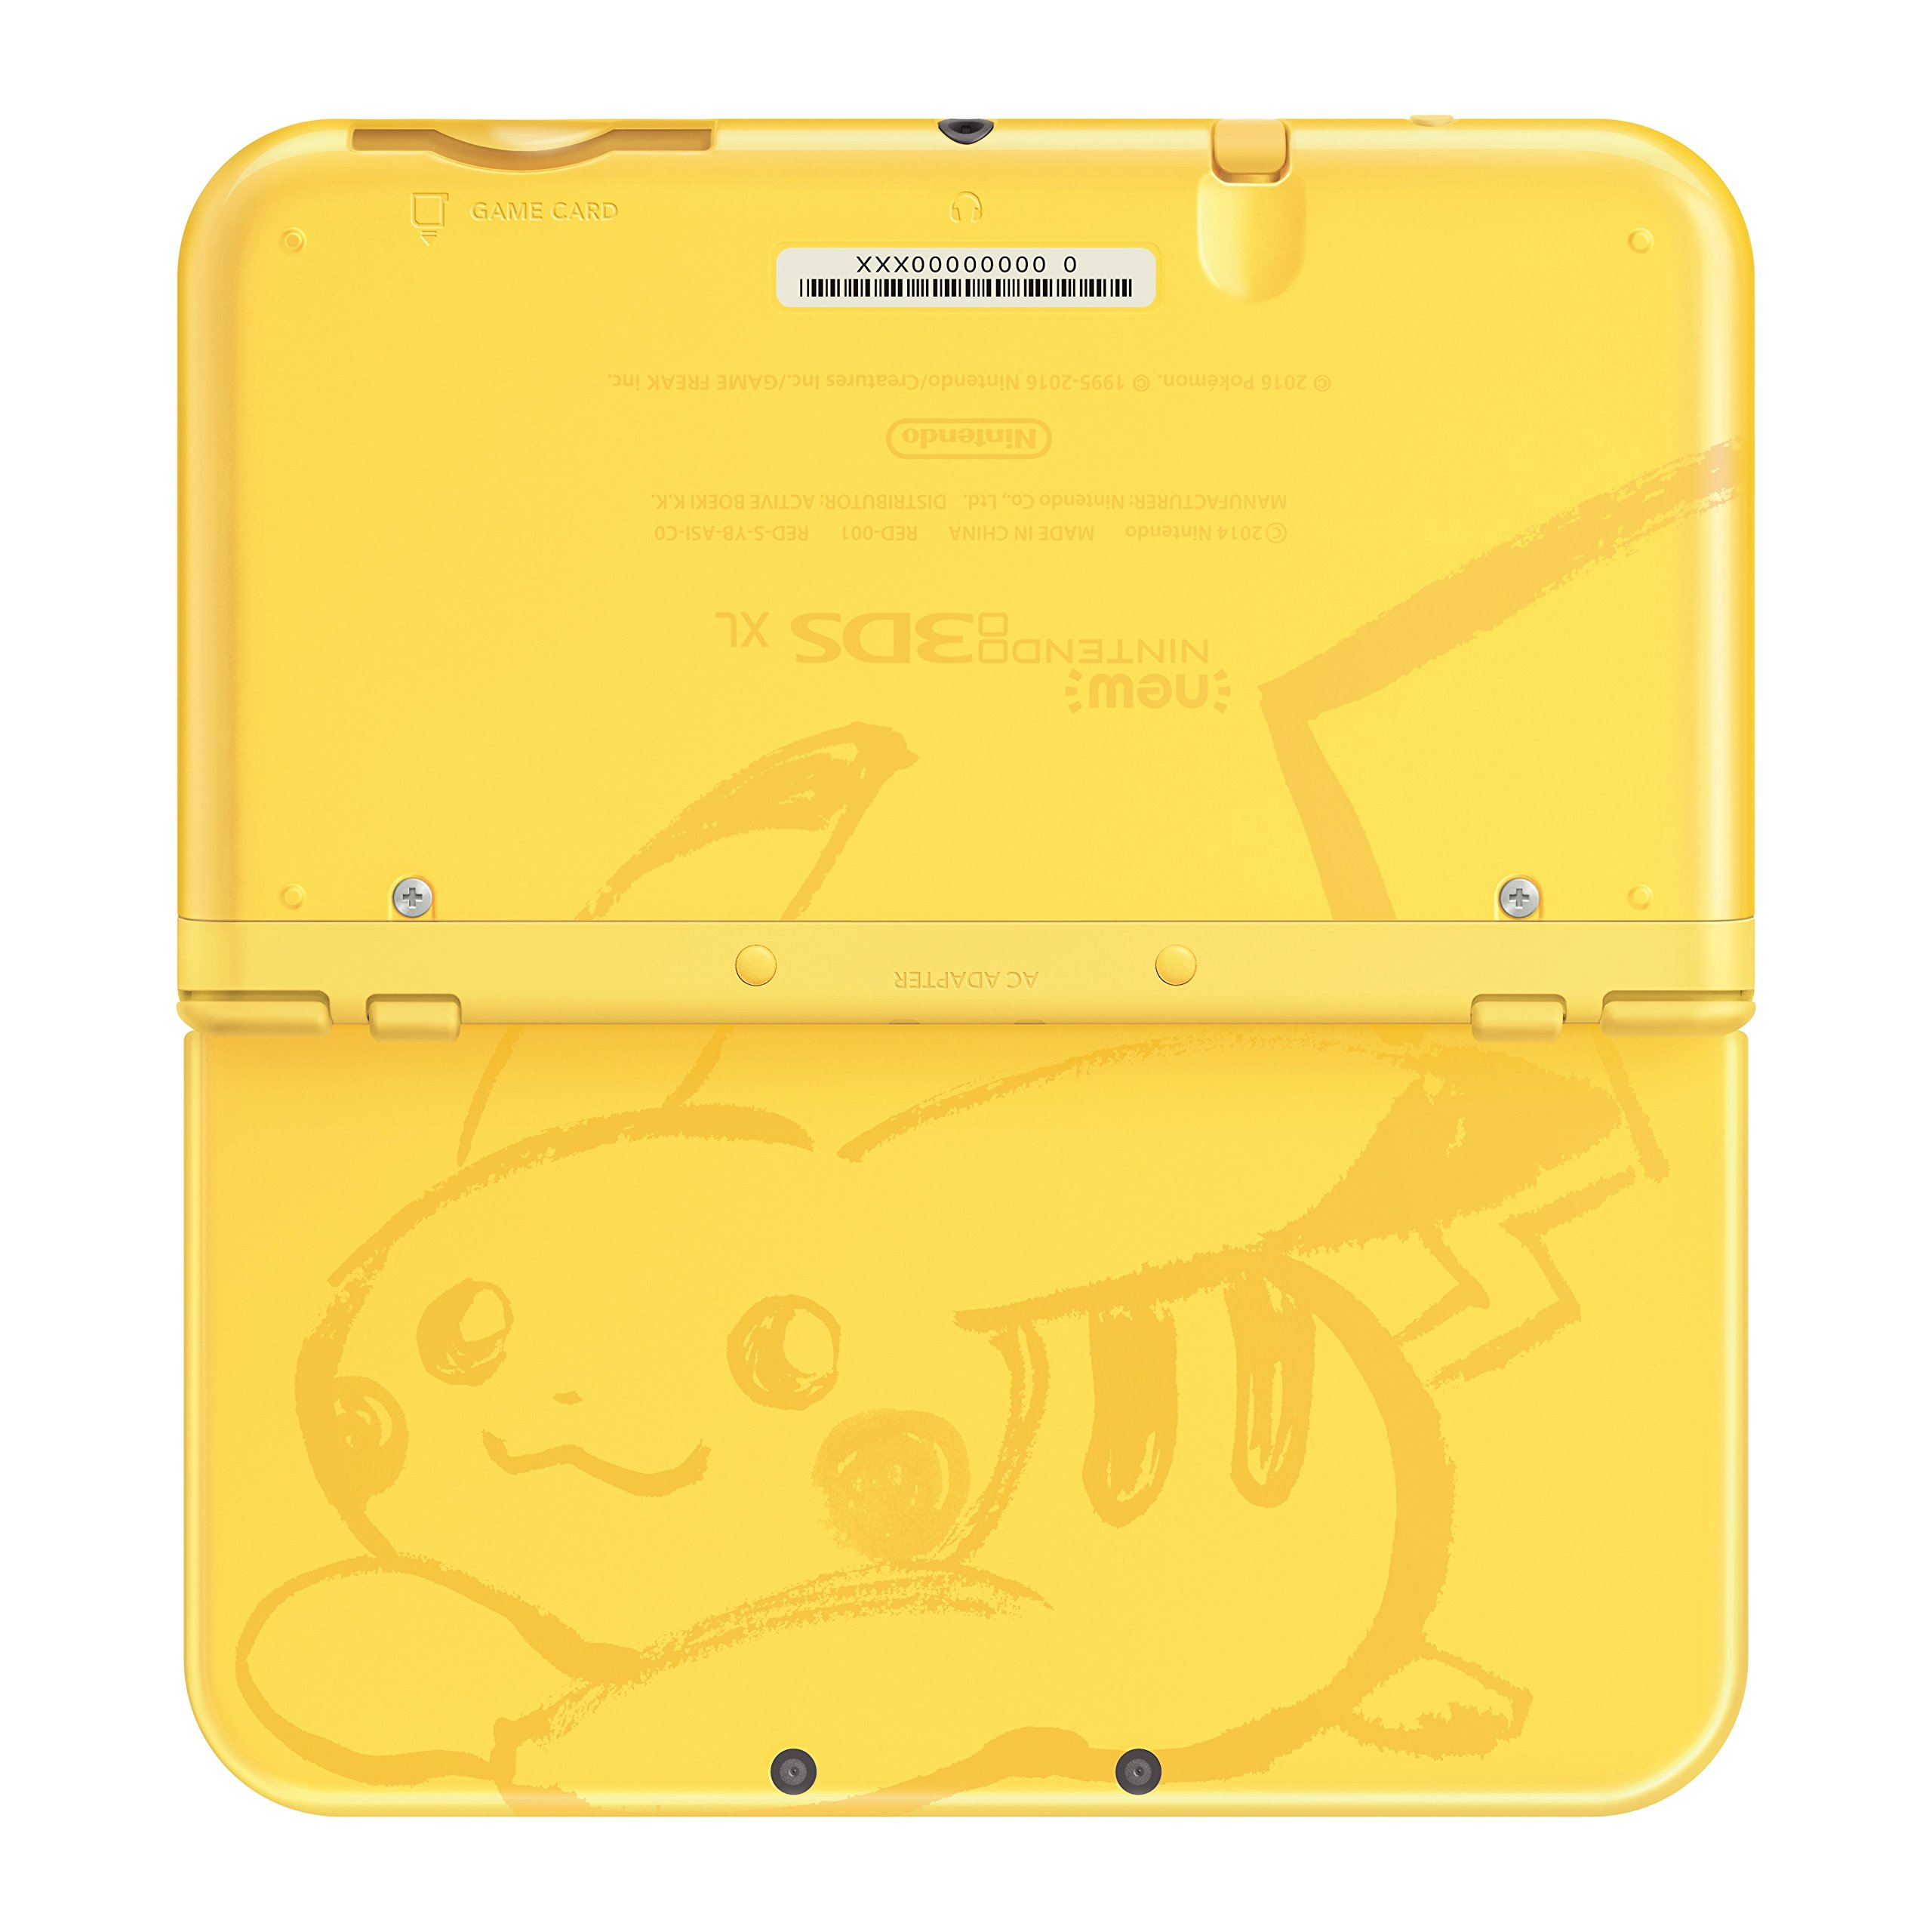 Nintendo New 3DS XL - Pikachu Yellow Edition [Discontinued] by Nintendo (Image #4)